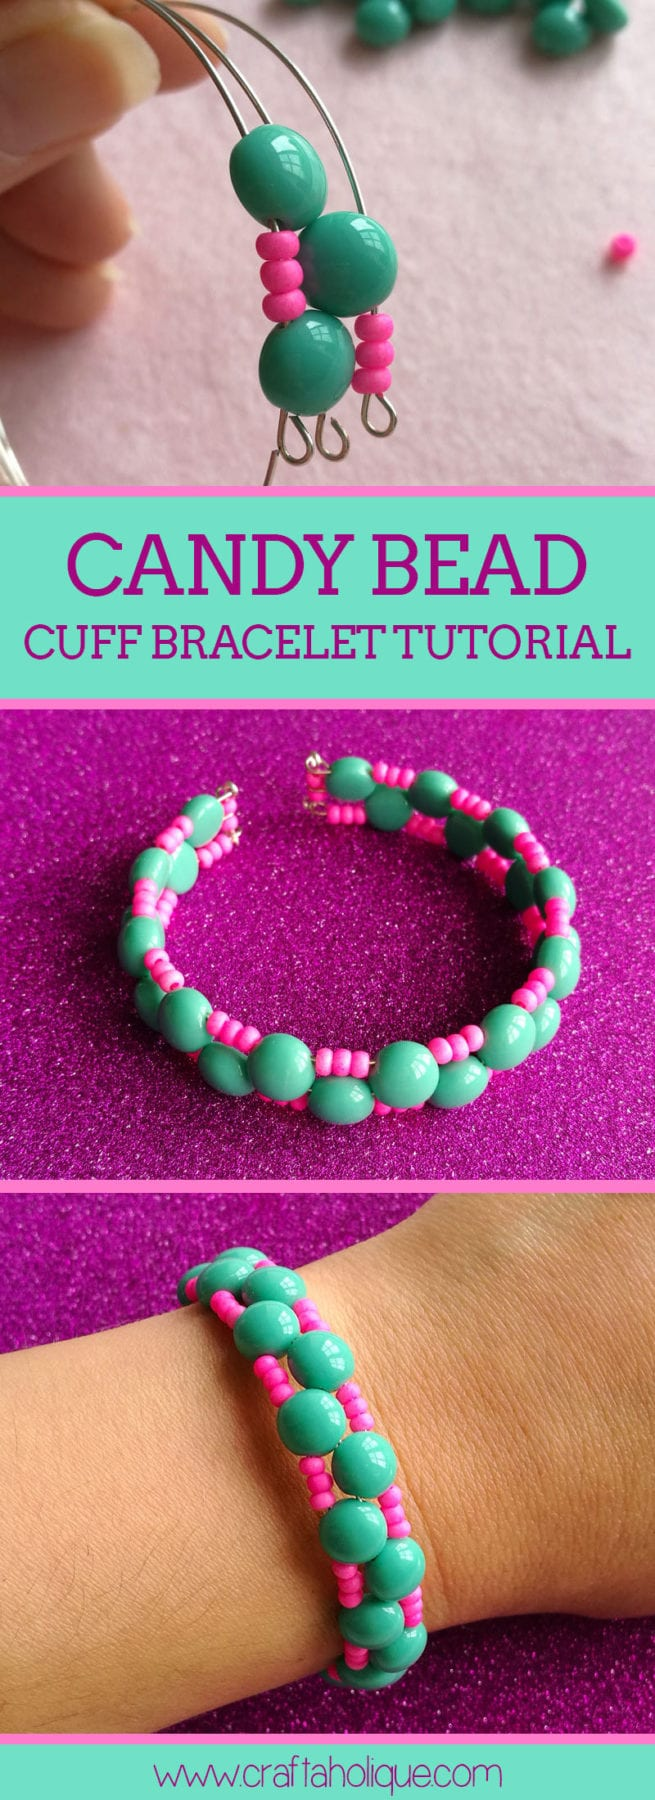 Candy bead and memory wire bracelet tutorial from Craftaholique